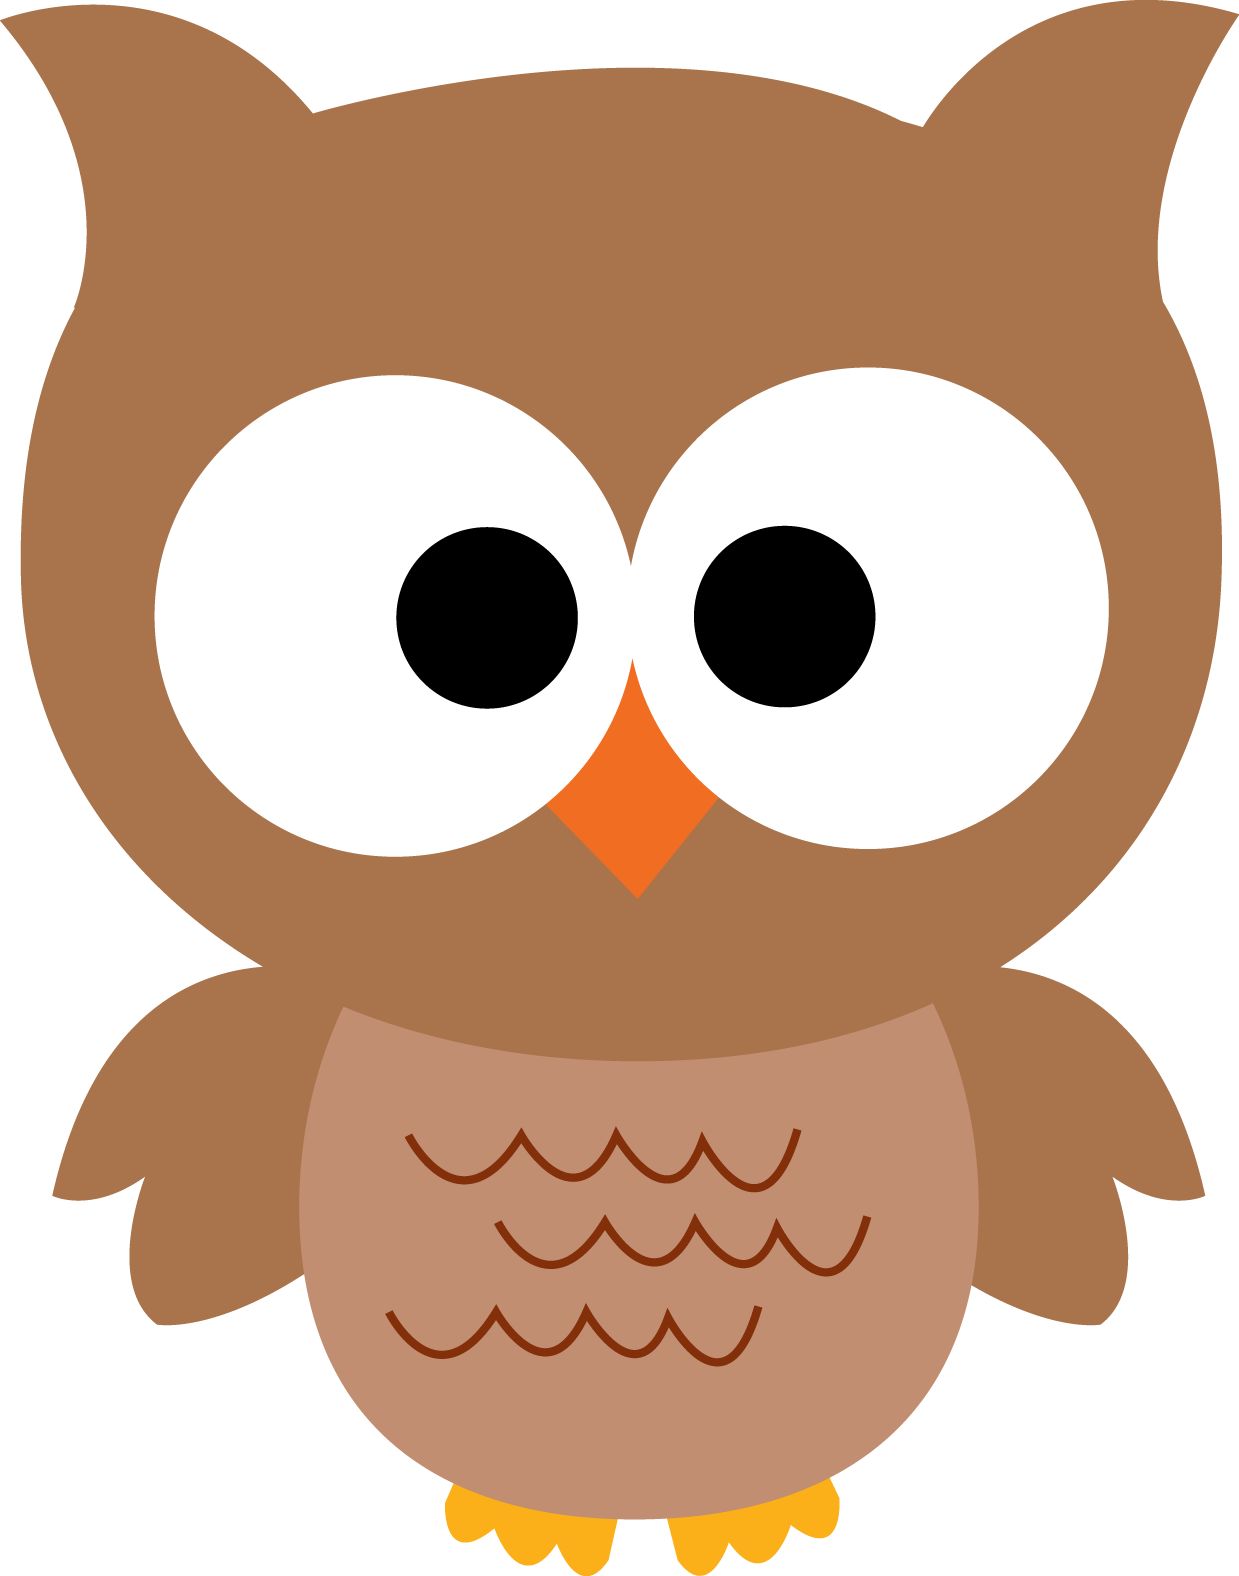 Clip Art Of Owl Free Cartoon .-Clip art of owl free cartoon .-2